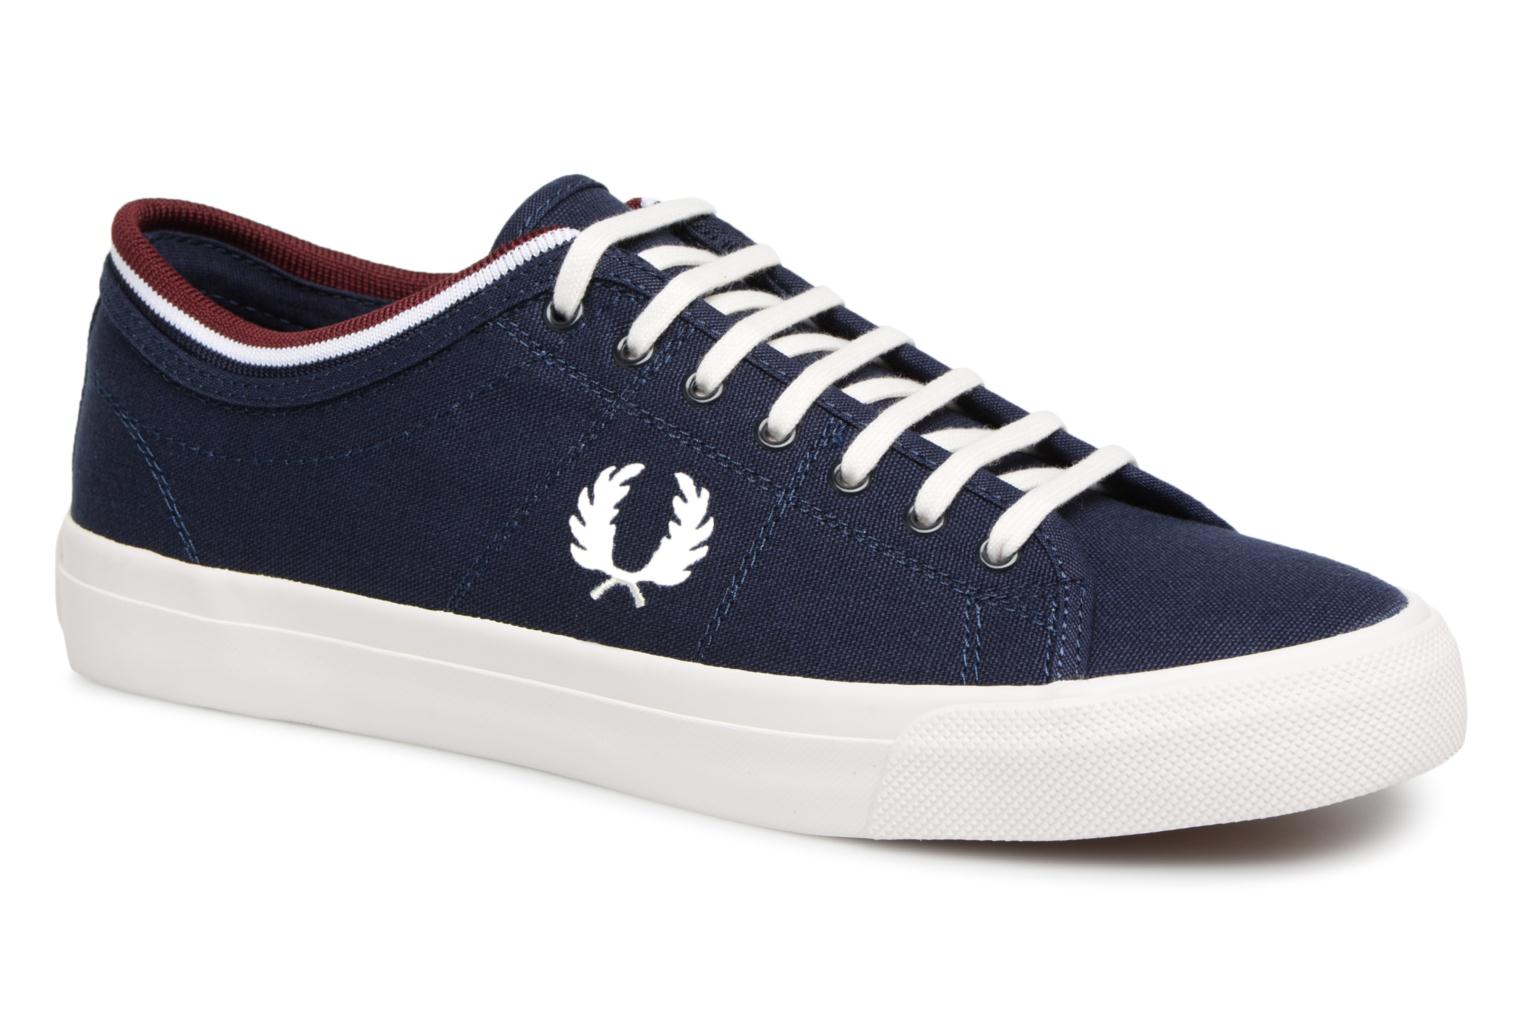 Fred Perry Chaussures ROSS CANVAS Fred Perry soldes E25Kp9HDH